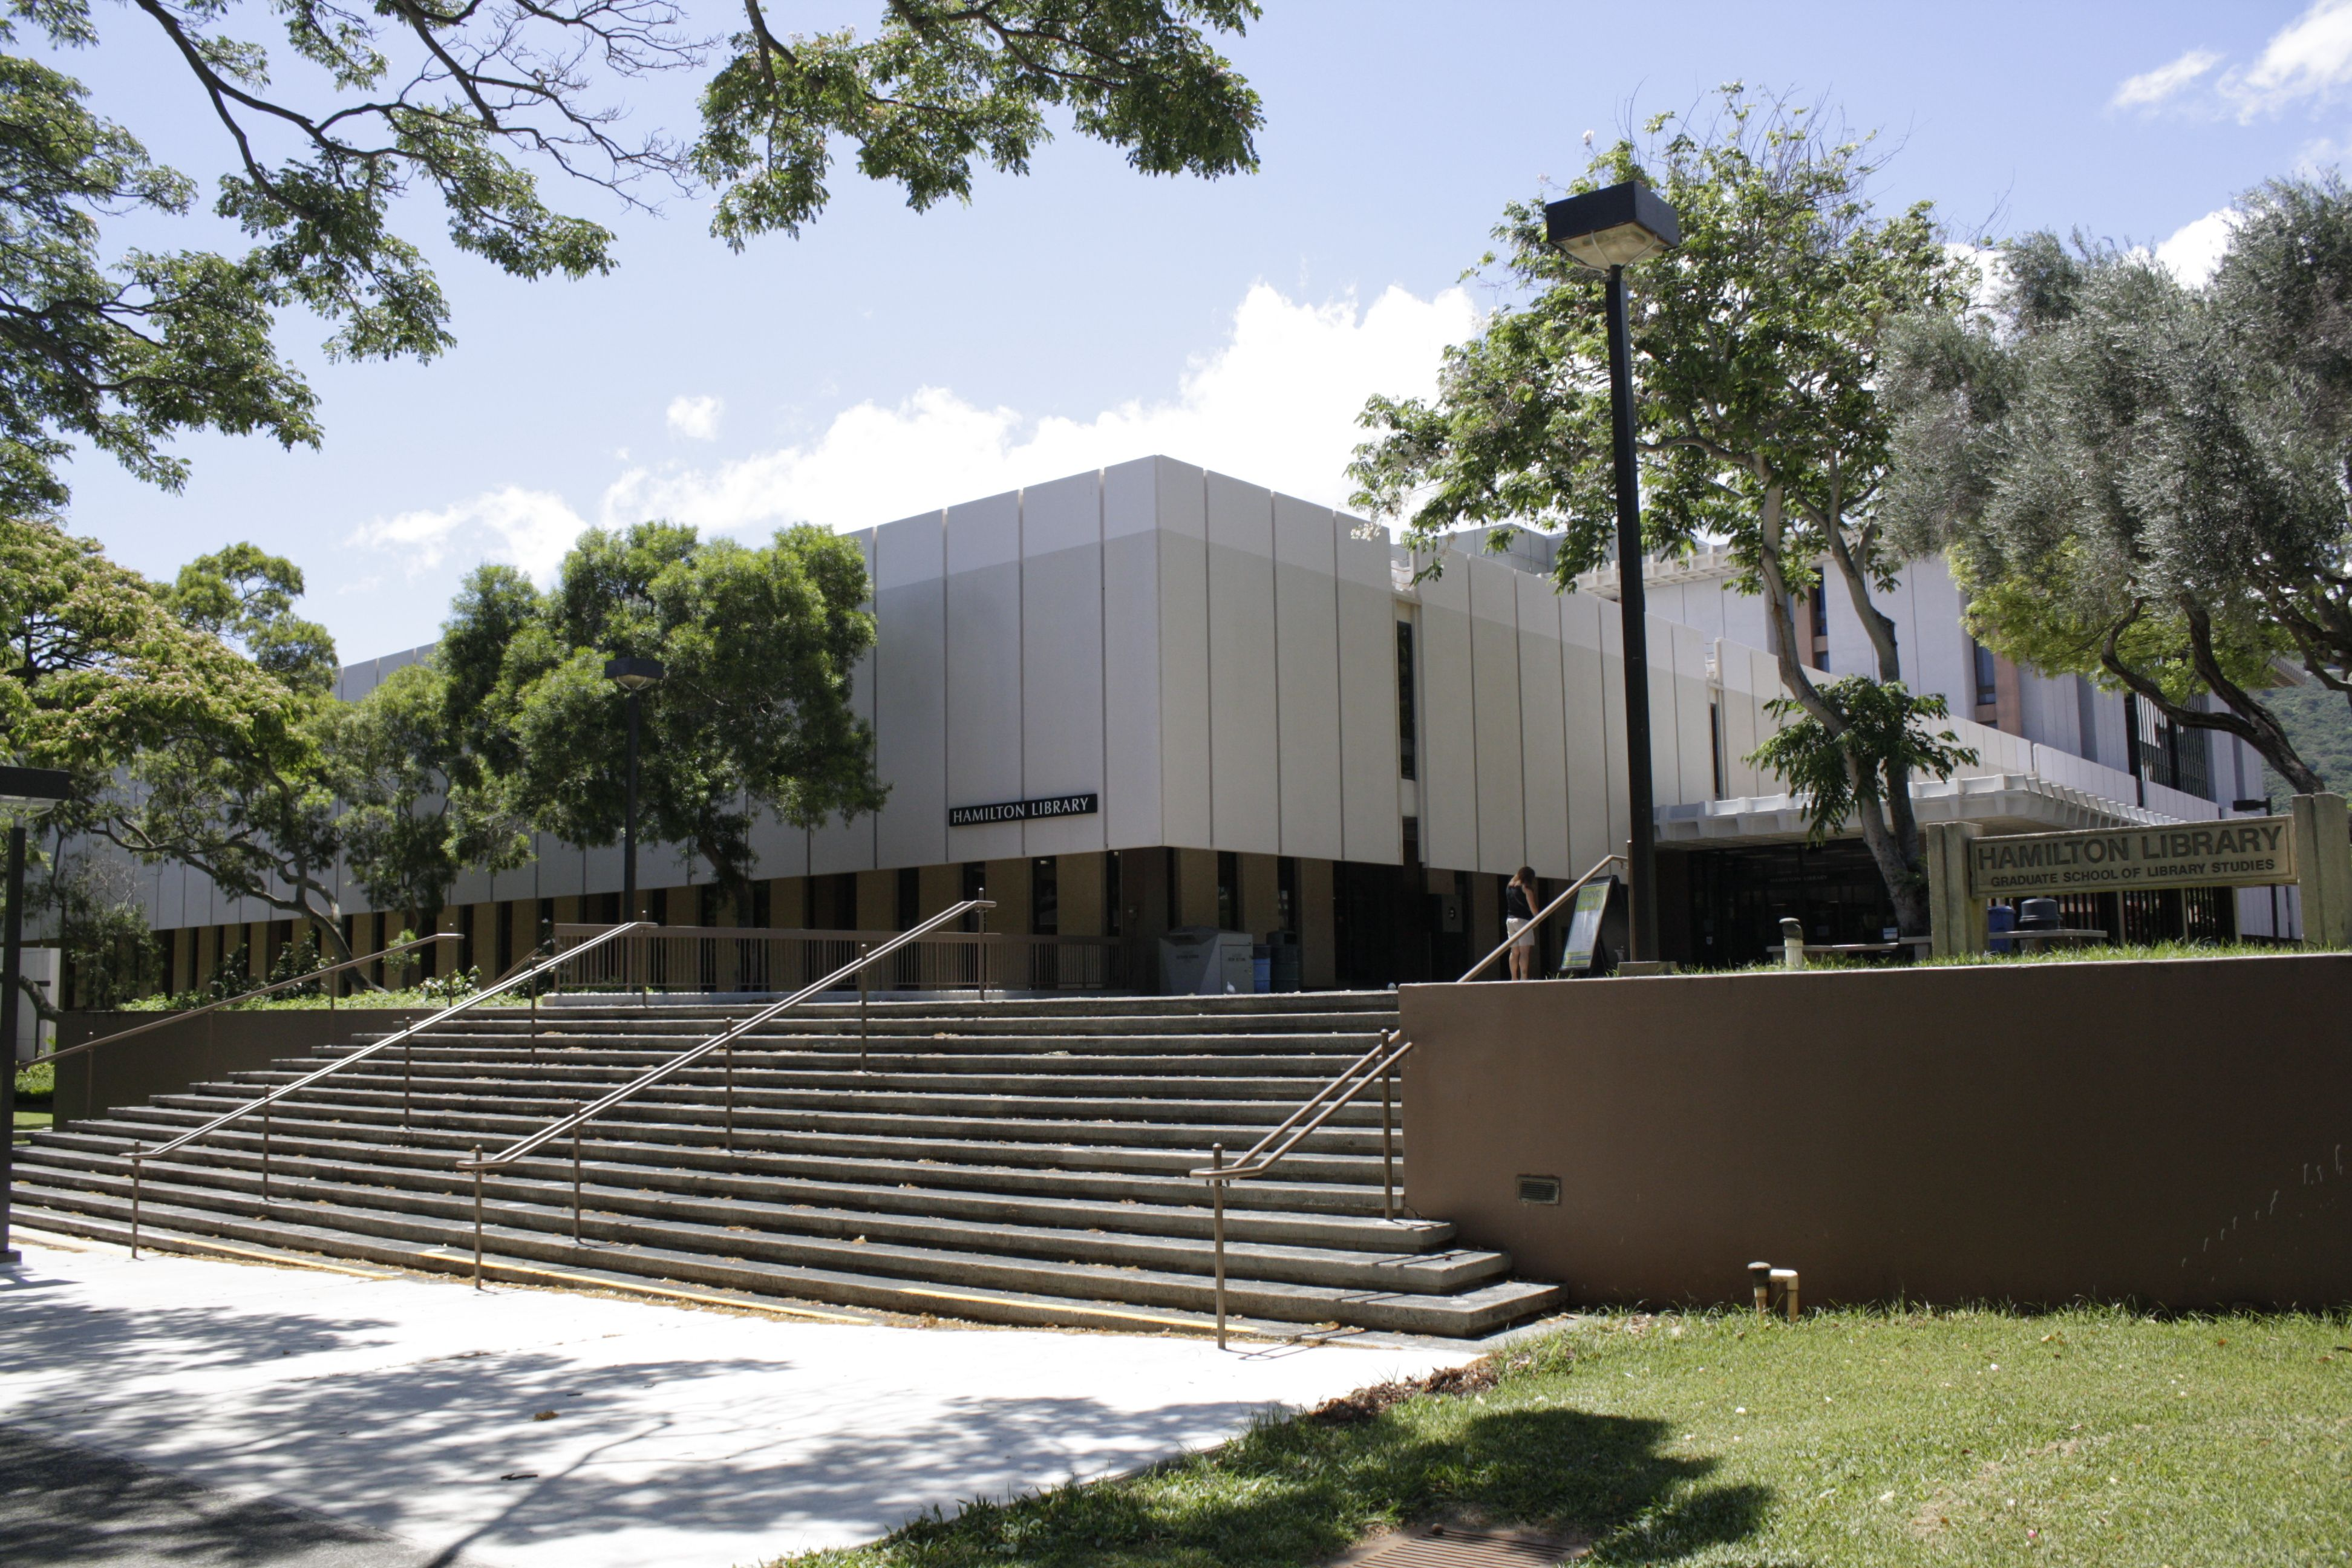 Hamilton Library At The University Of Hawaii Colleges And Universities Hawaii